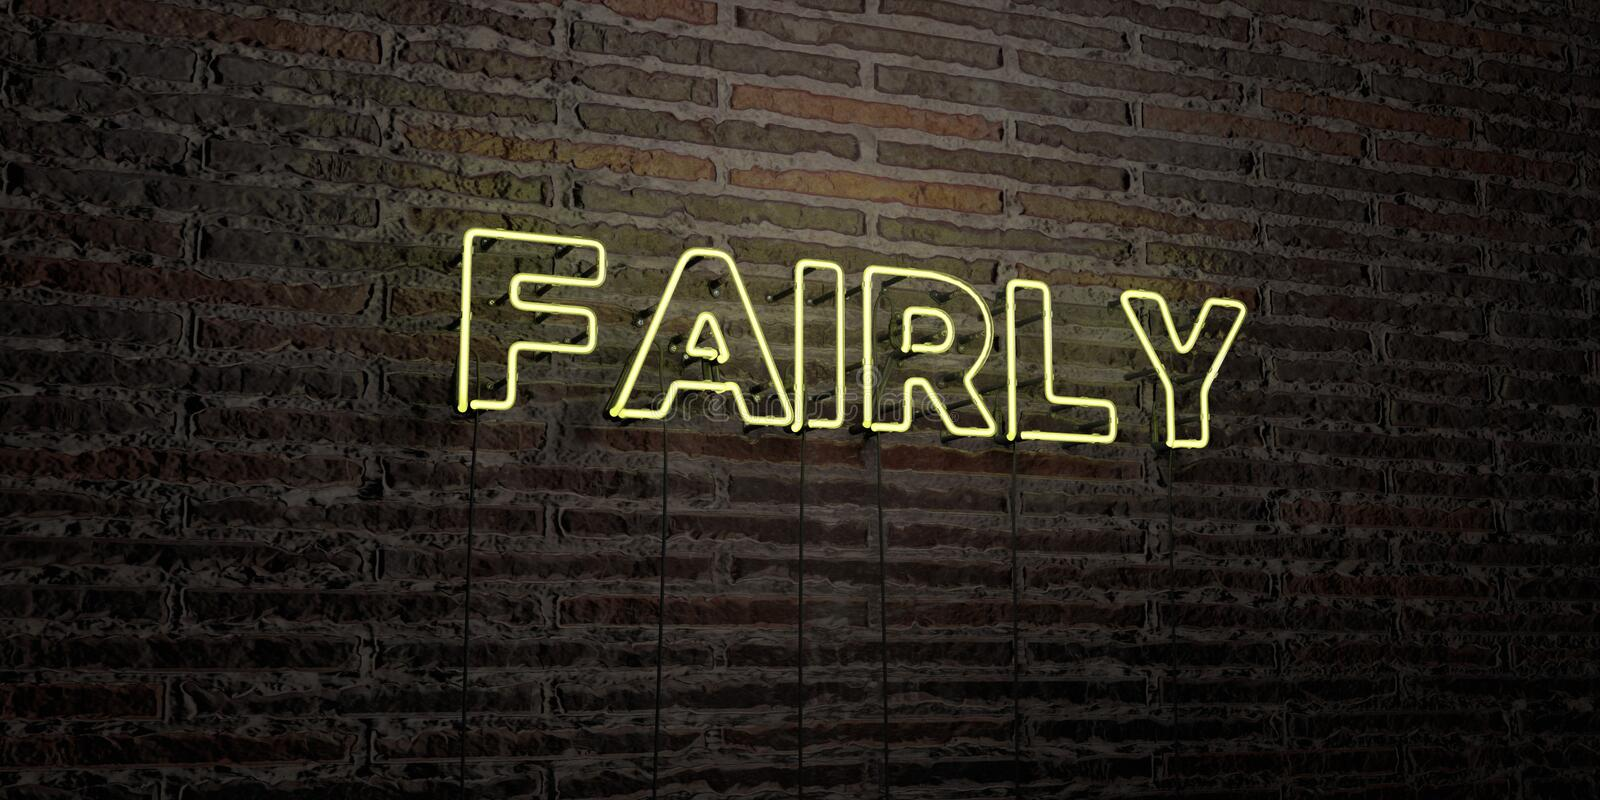 FAIRLY -Realistic Neon Sign on Brick Wall background - 3D rendered royalty free stock image. Can be used for online banner ads and direct mailers vector illustration